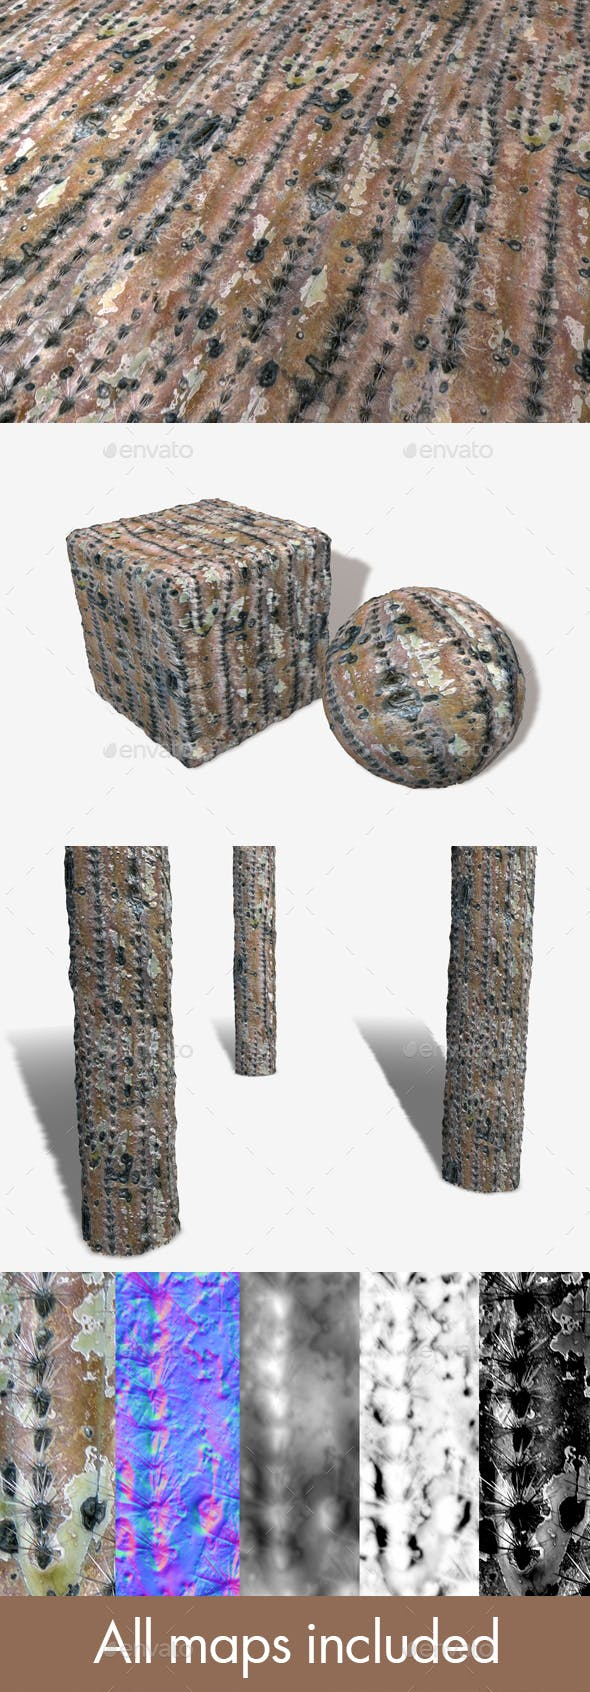 Dry Cactus Seamless Texture - 3DOcean Item for Sale